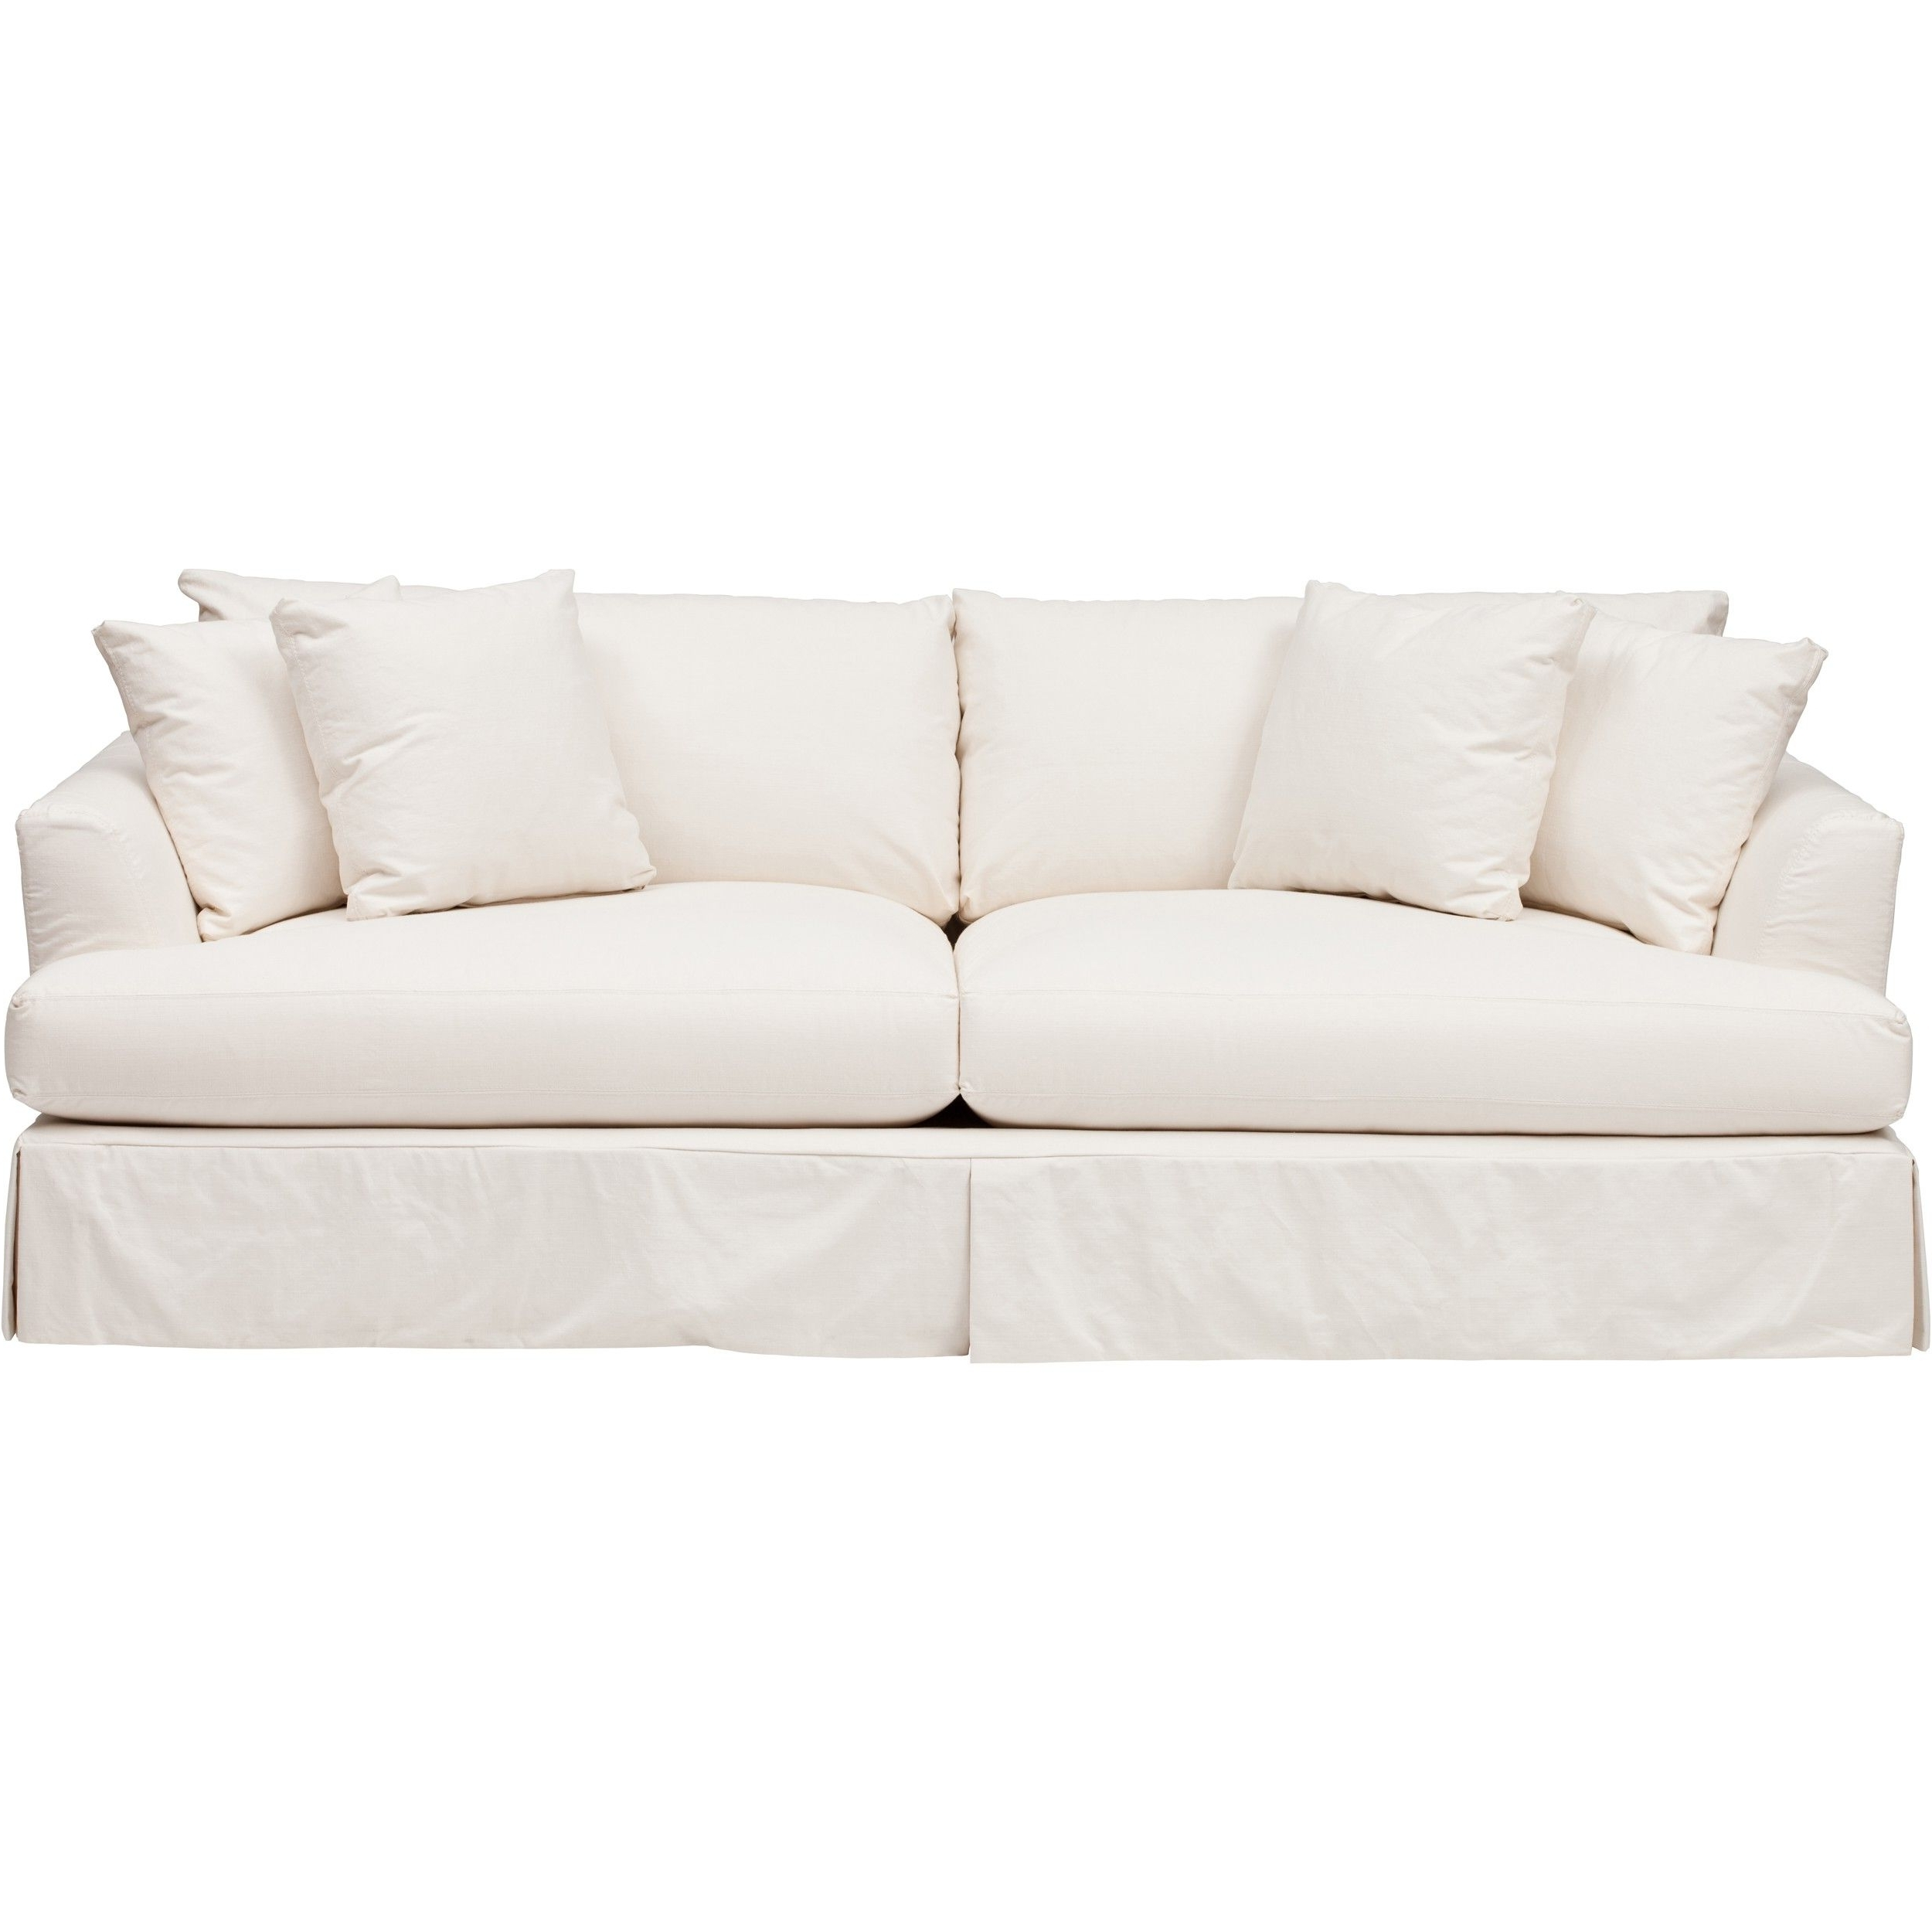 Andre Slipcover Sofa – Furniture – Sofas – Fabric – Slipcovers Pertaining To Most Popular Slipcovers Sofas (View 9 of 20)